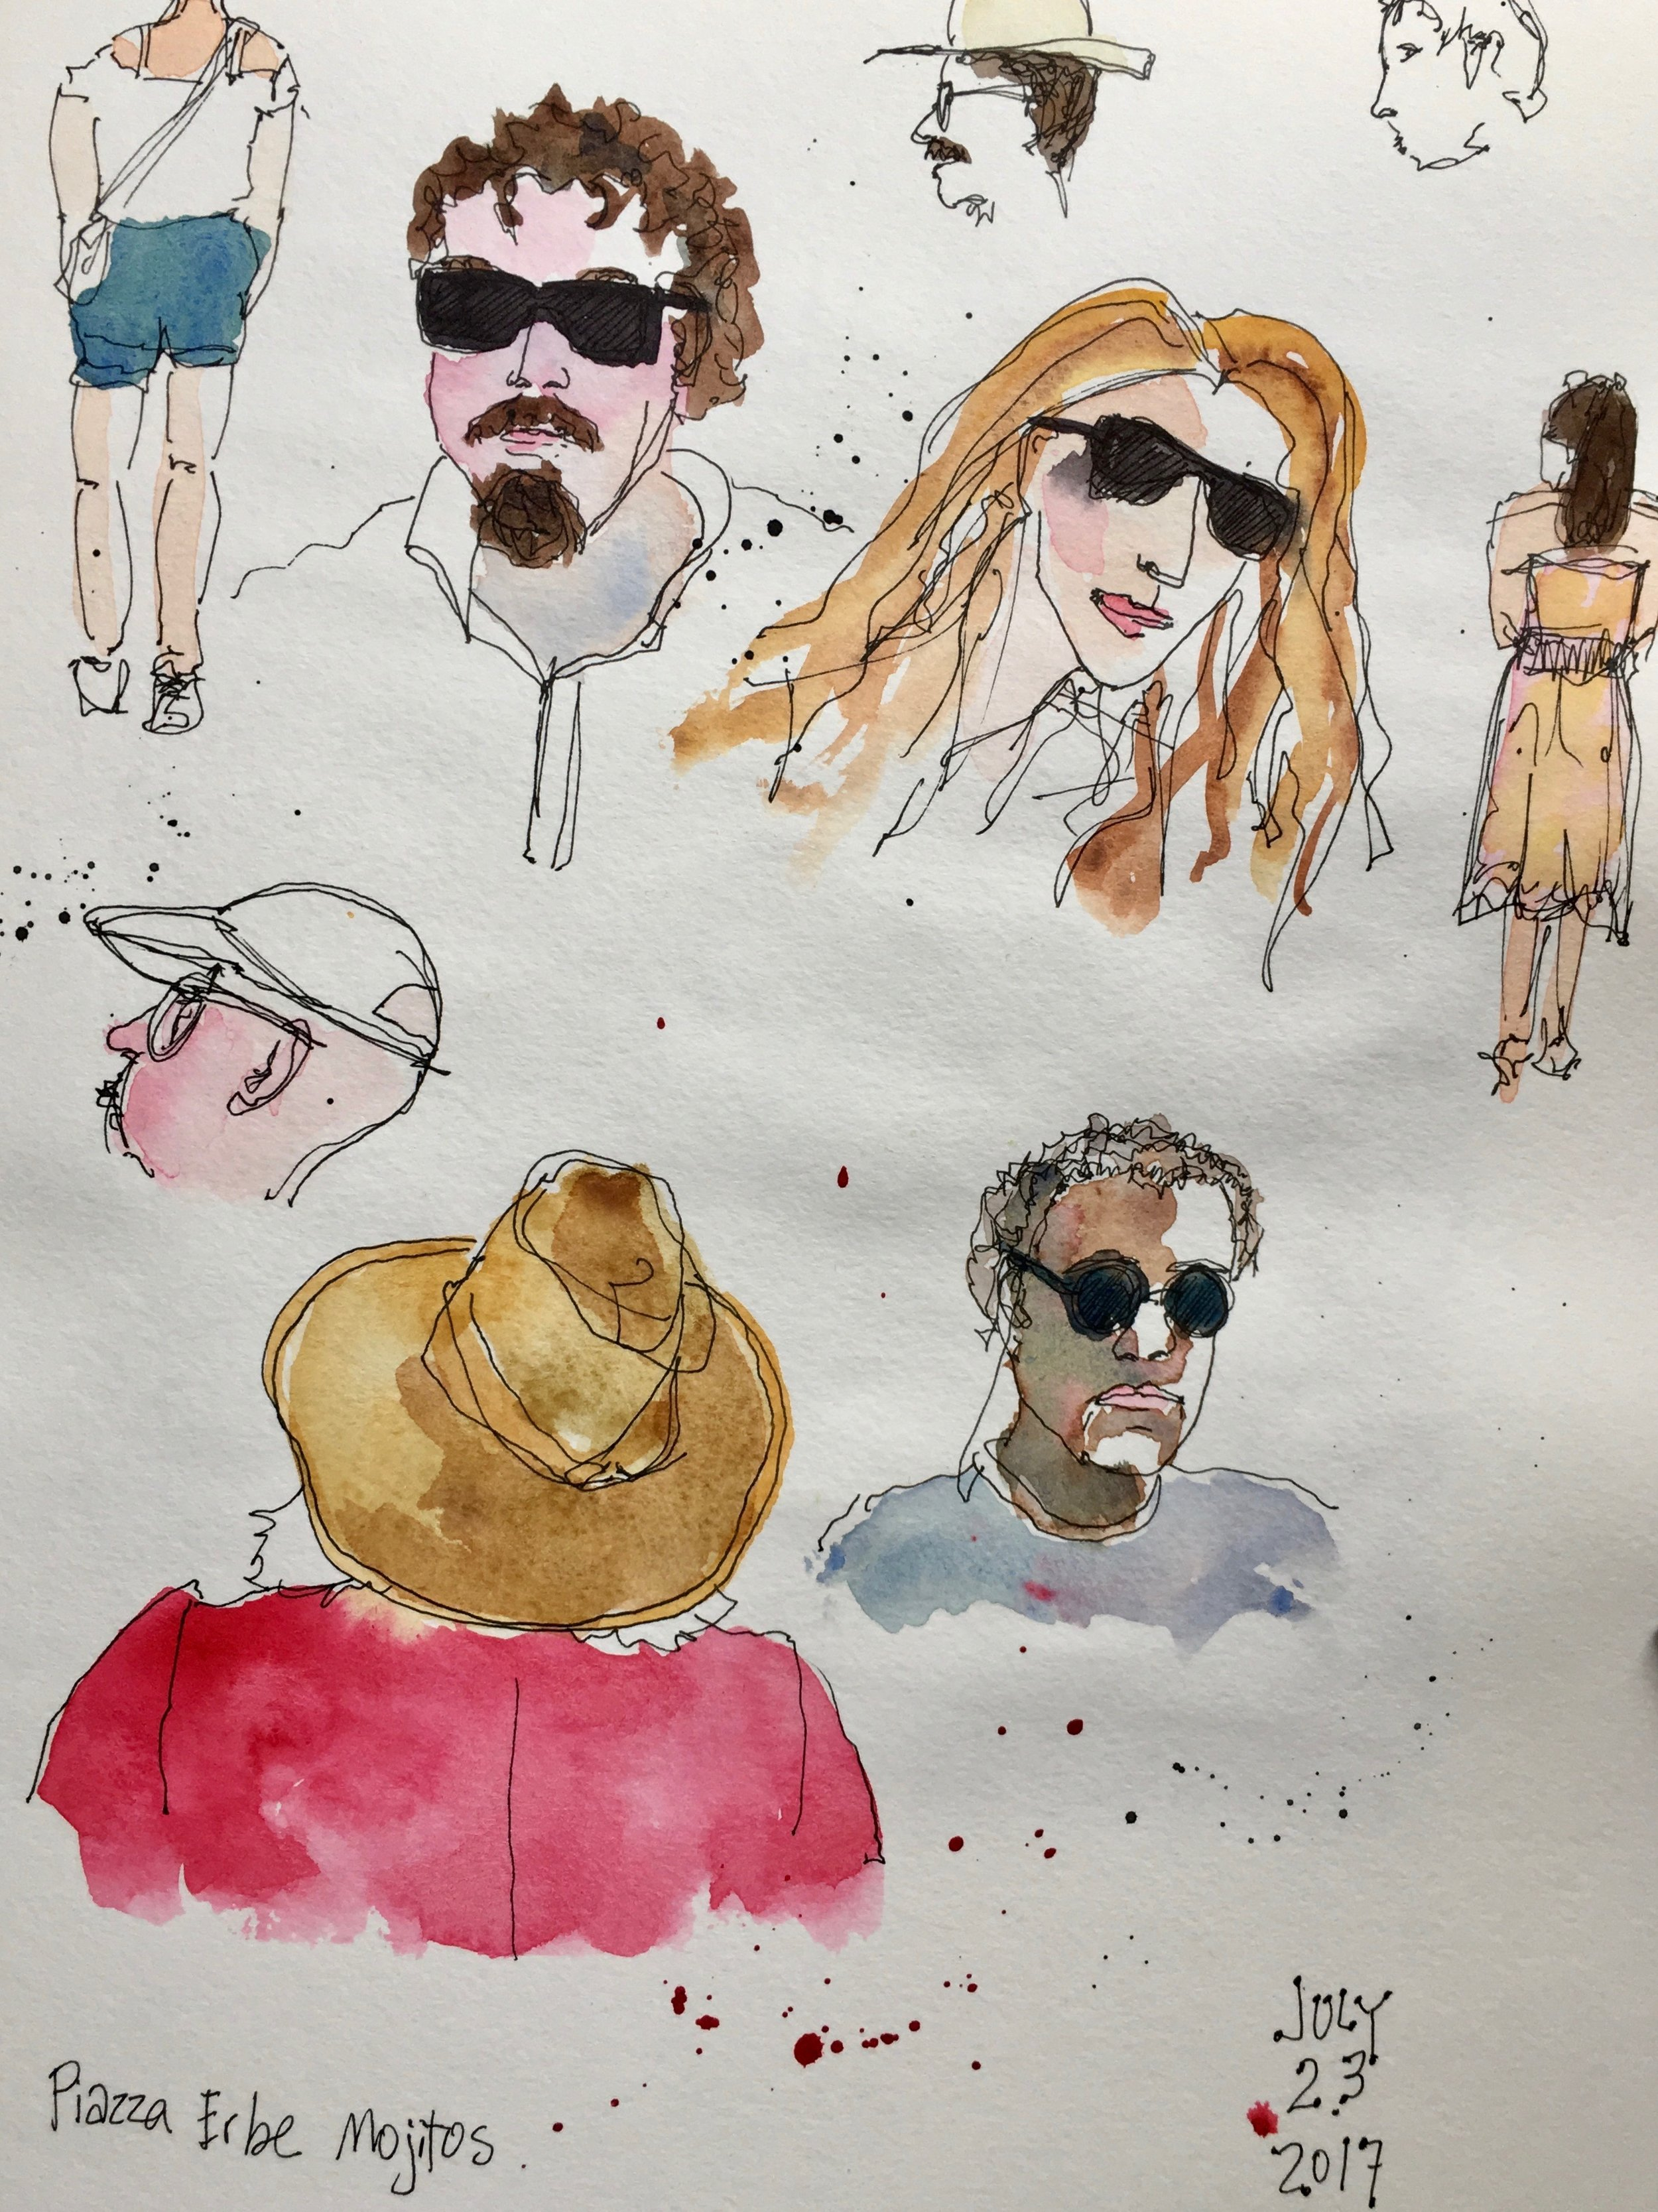 Back in Verona, we sat outdoors in Piazza Erbe, sipping ice-cold mojitos, sketching (me) and talking to a man (Dave) at the table next to us. He was from Ireland and had quite a few entertaining stories to share.